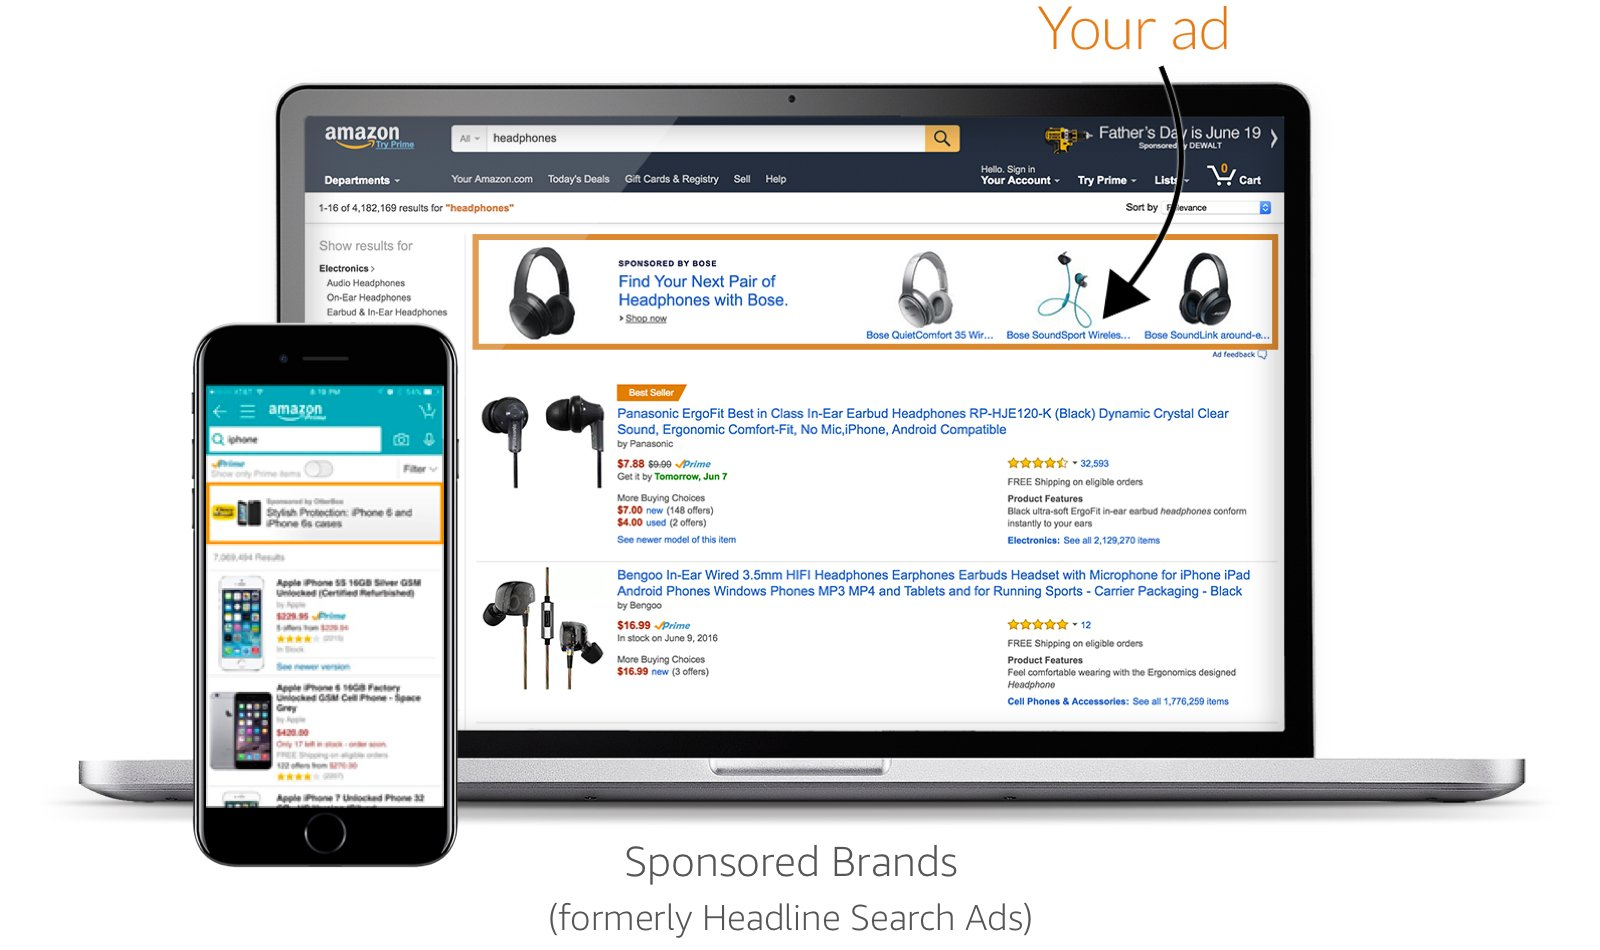 Sponsored Brands (formerly Headline Search Ads)